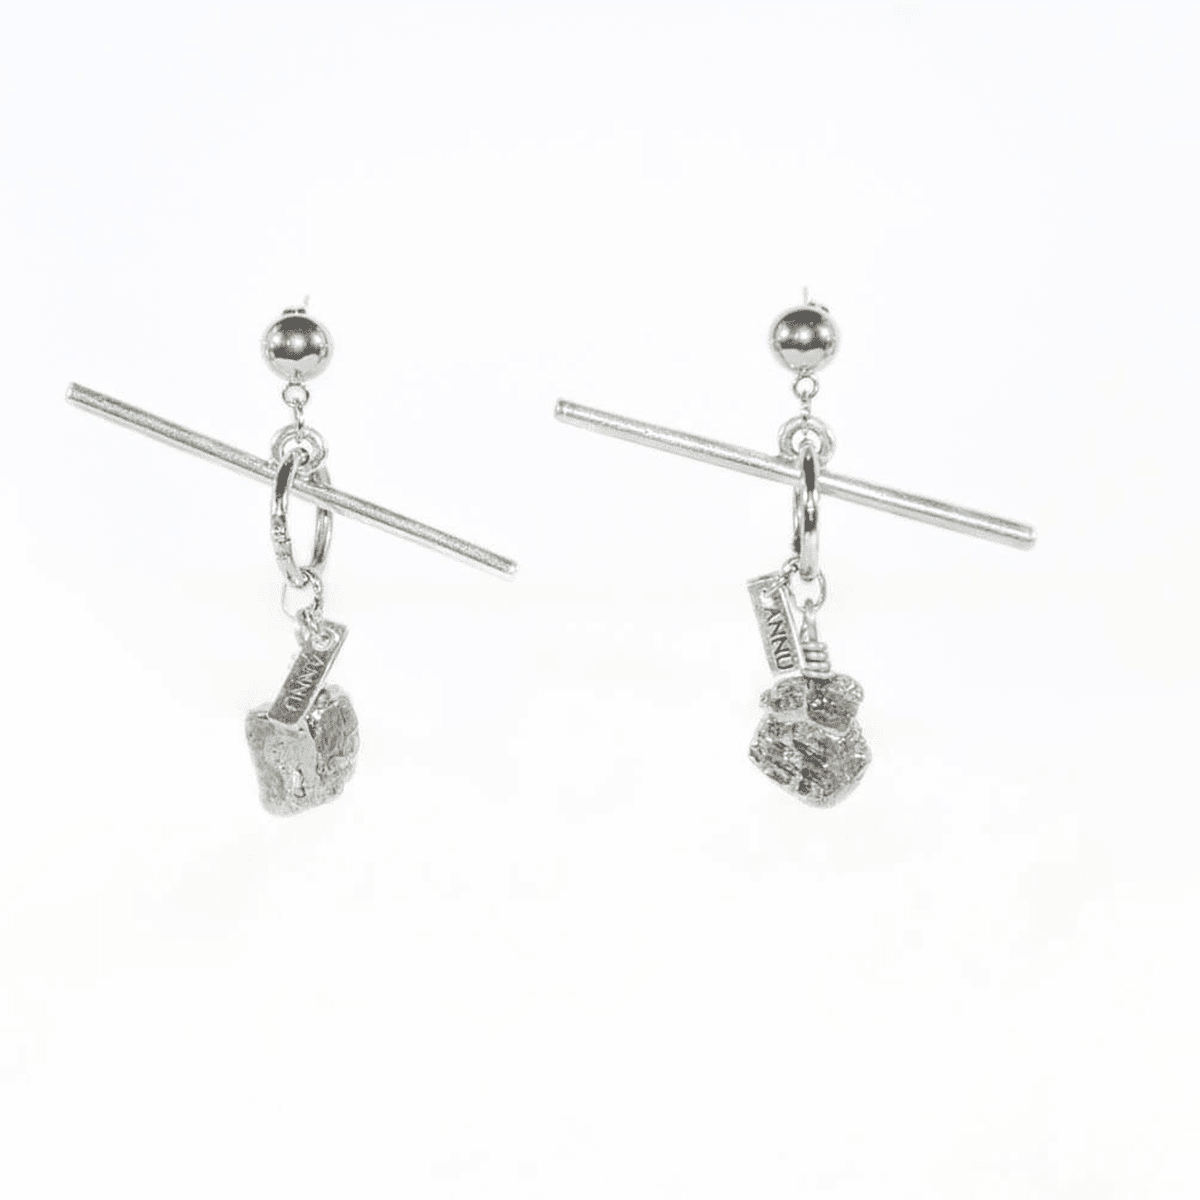 Unusual 3D Pyrite Stone Dangler Earrings - Tanzire Store